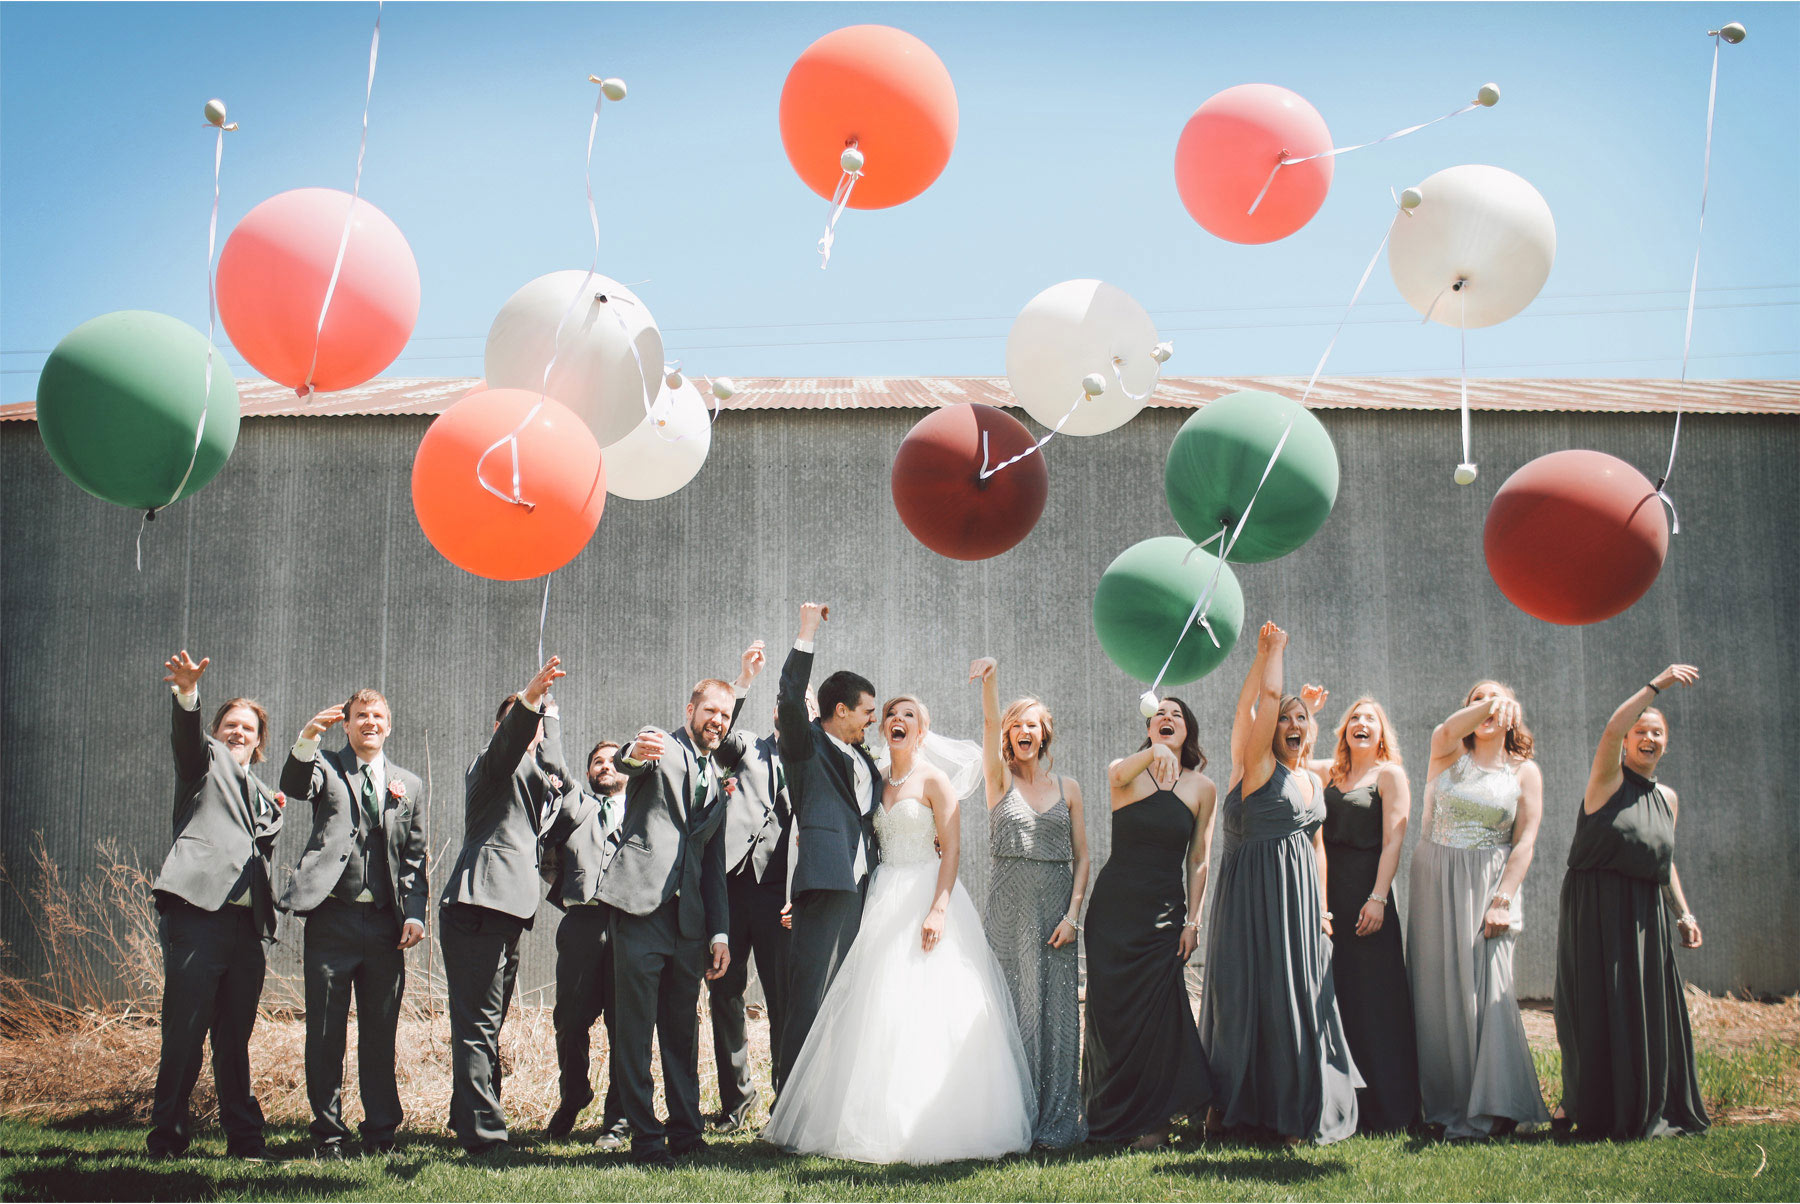 07-Minneapolis-Wedding-Photography-by-Vick-Photography-Balloons-Wedding-Party-Group-Country-Barn-Kasie-and-Joshua.jpg